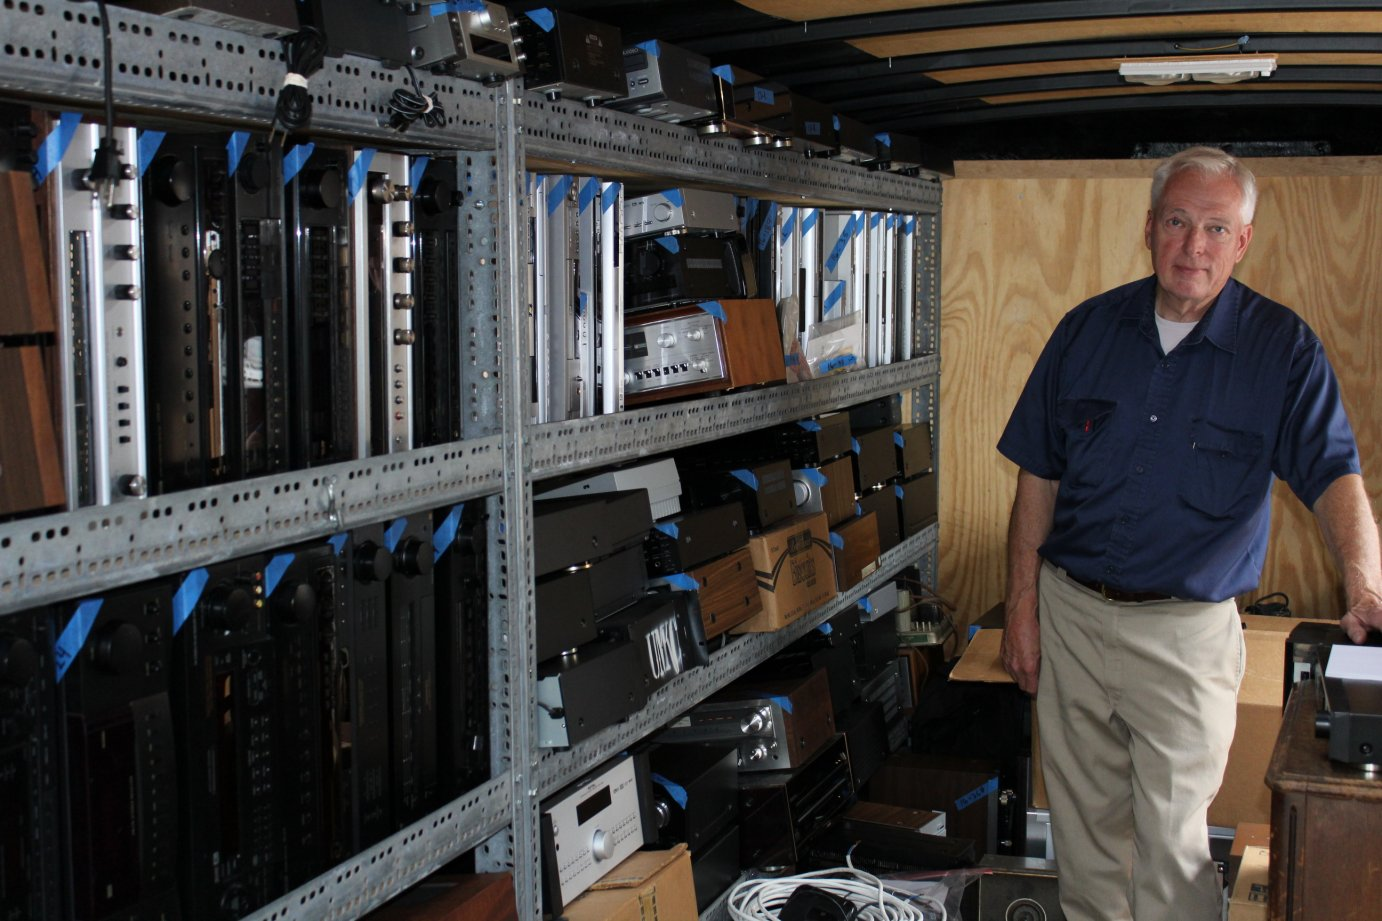 Audio-Reader volunteer Dave Dunford, of De Soto, stands inside one of two trailers filled with donated audio equipment. Dunford inspects, repairs, cleans and restores all manner of audio equipment for the annual benefit sale For Your Ears Only. (Photo by J. Schafer)